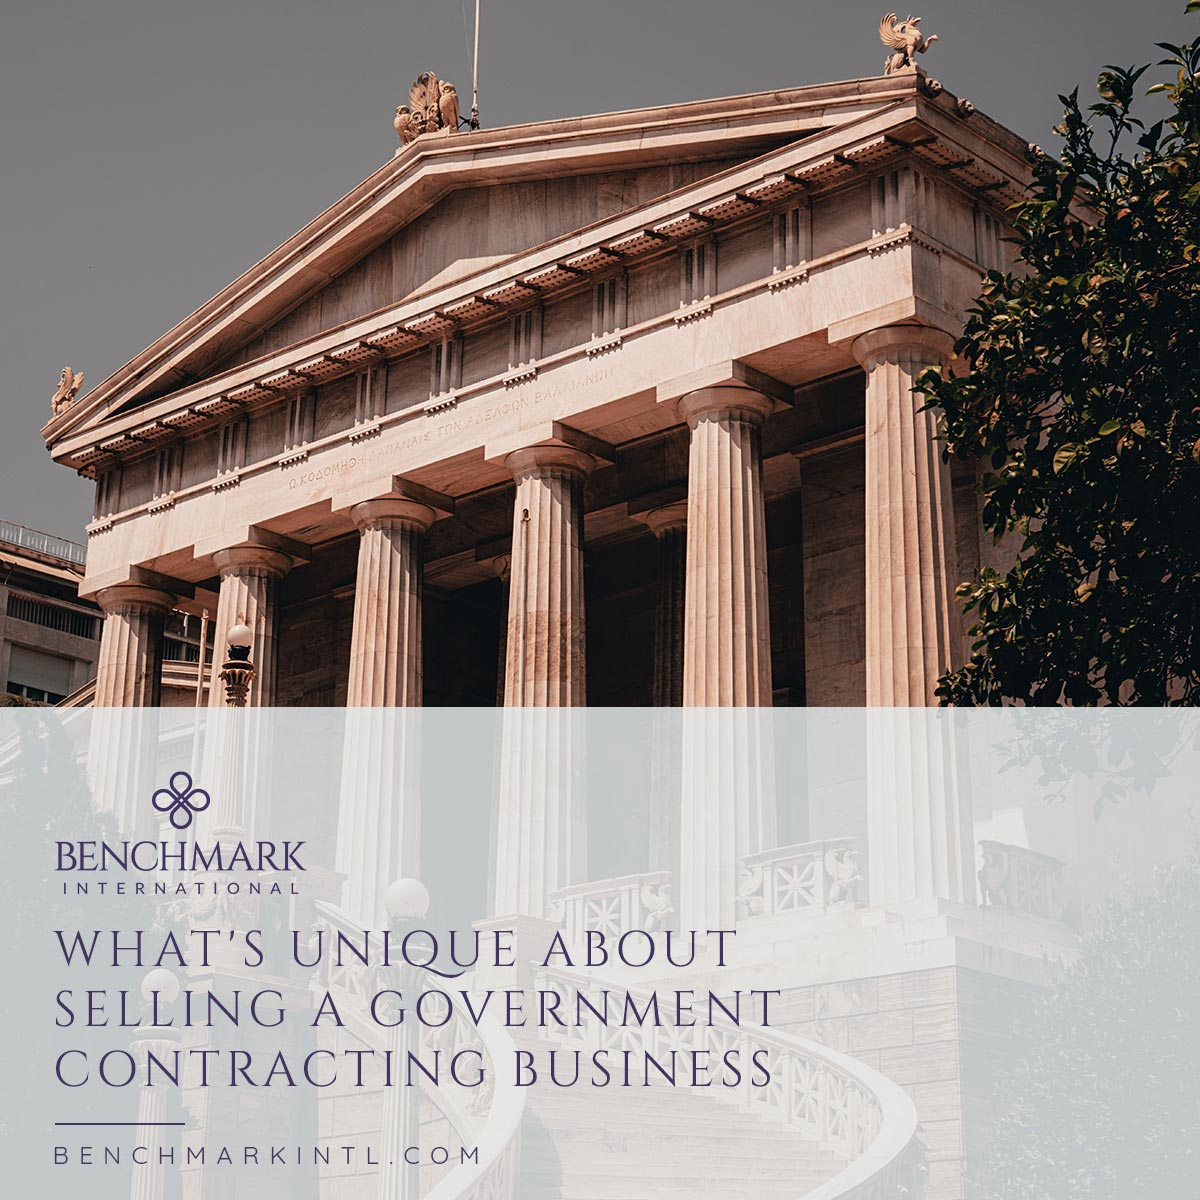 Whats_Unique_About_Selling_A_Government_Contracting_Business_Social